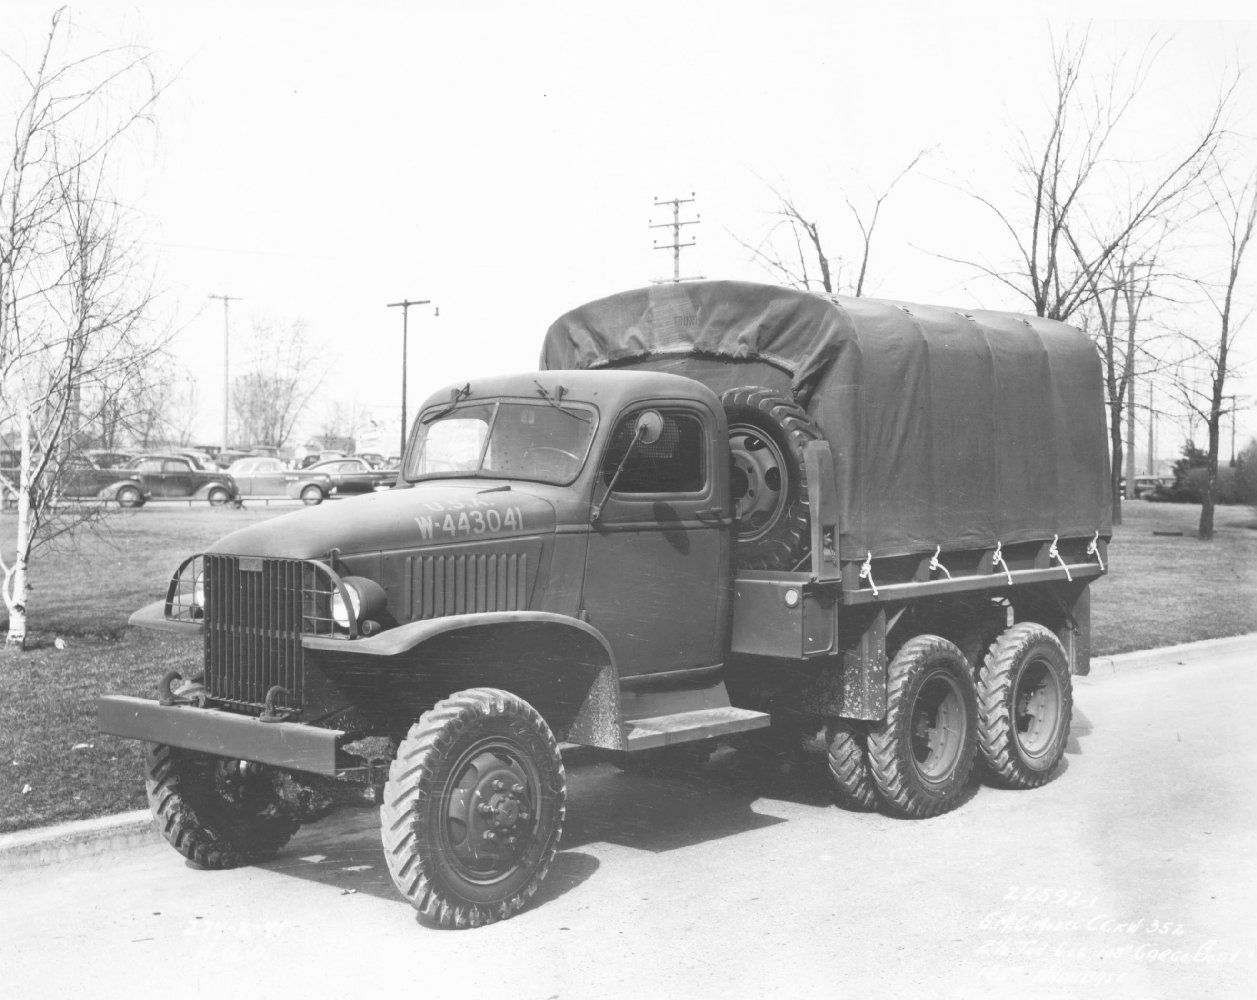 Dodge trucks in wwii - Hafner Rotabuggy Flying Jeep From Wwii Era Jeep Willys Mb Pinterest Jeeps Willys Mb And Jeep Willys